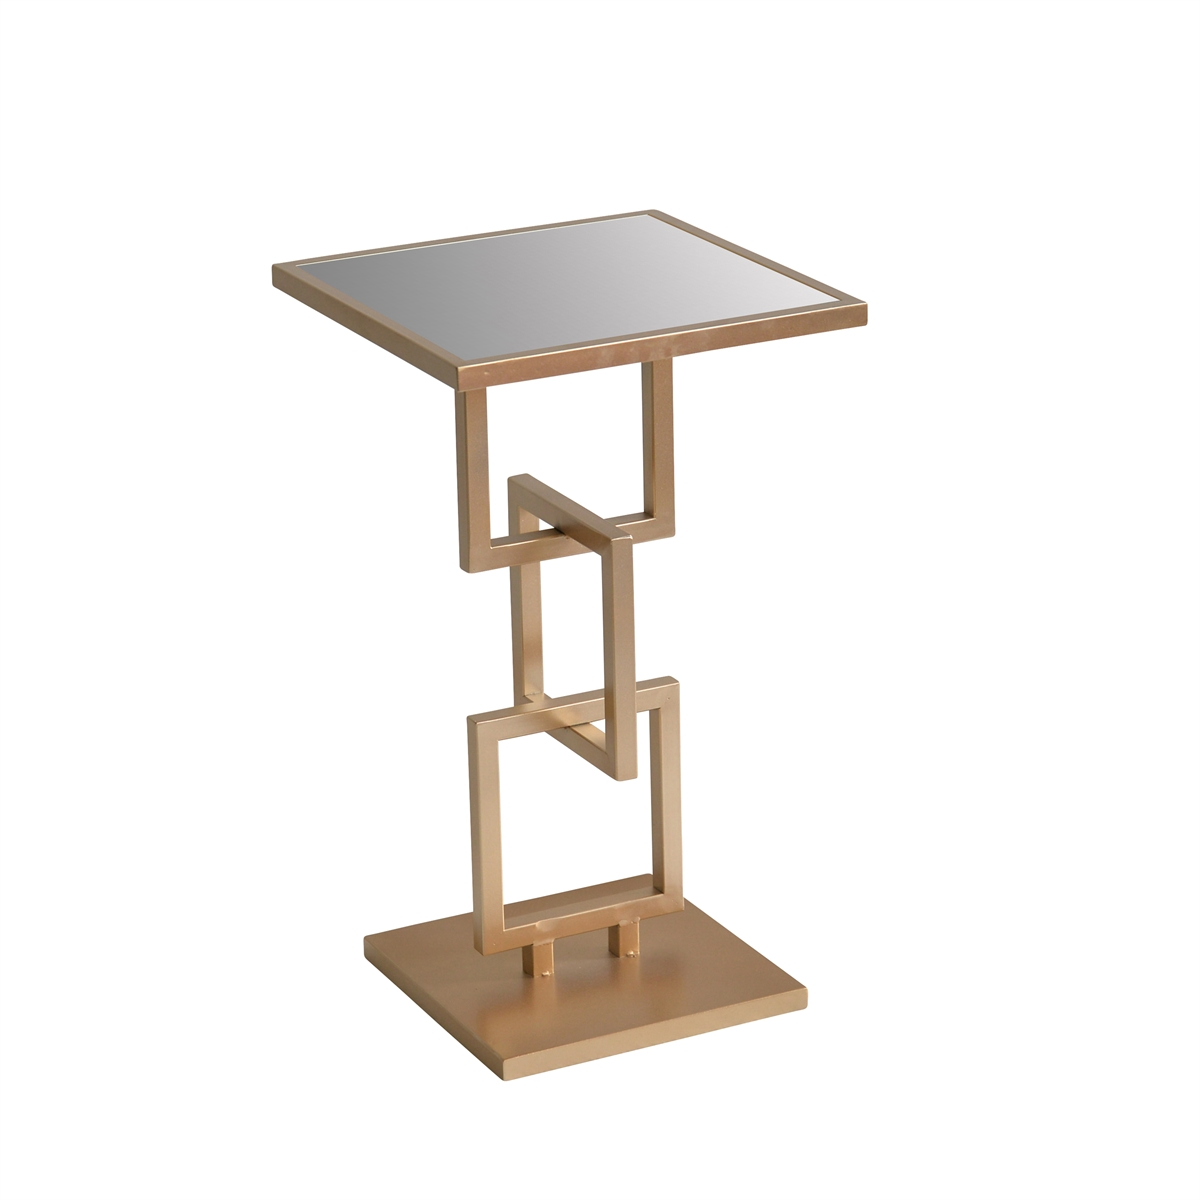 metal accent table mirror top gold sagebrook home inch square tablecloth old coffee pub style kitchen plastic patio side console cabinets target dining room replica retro